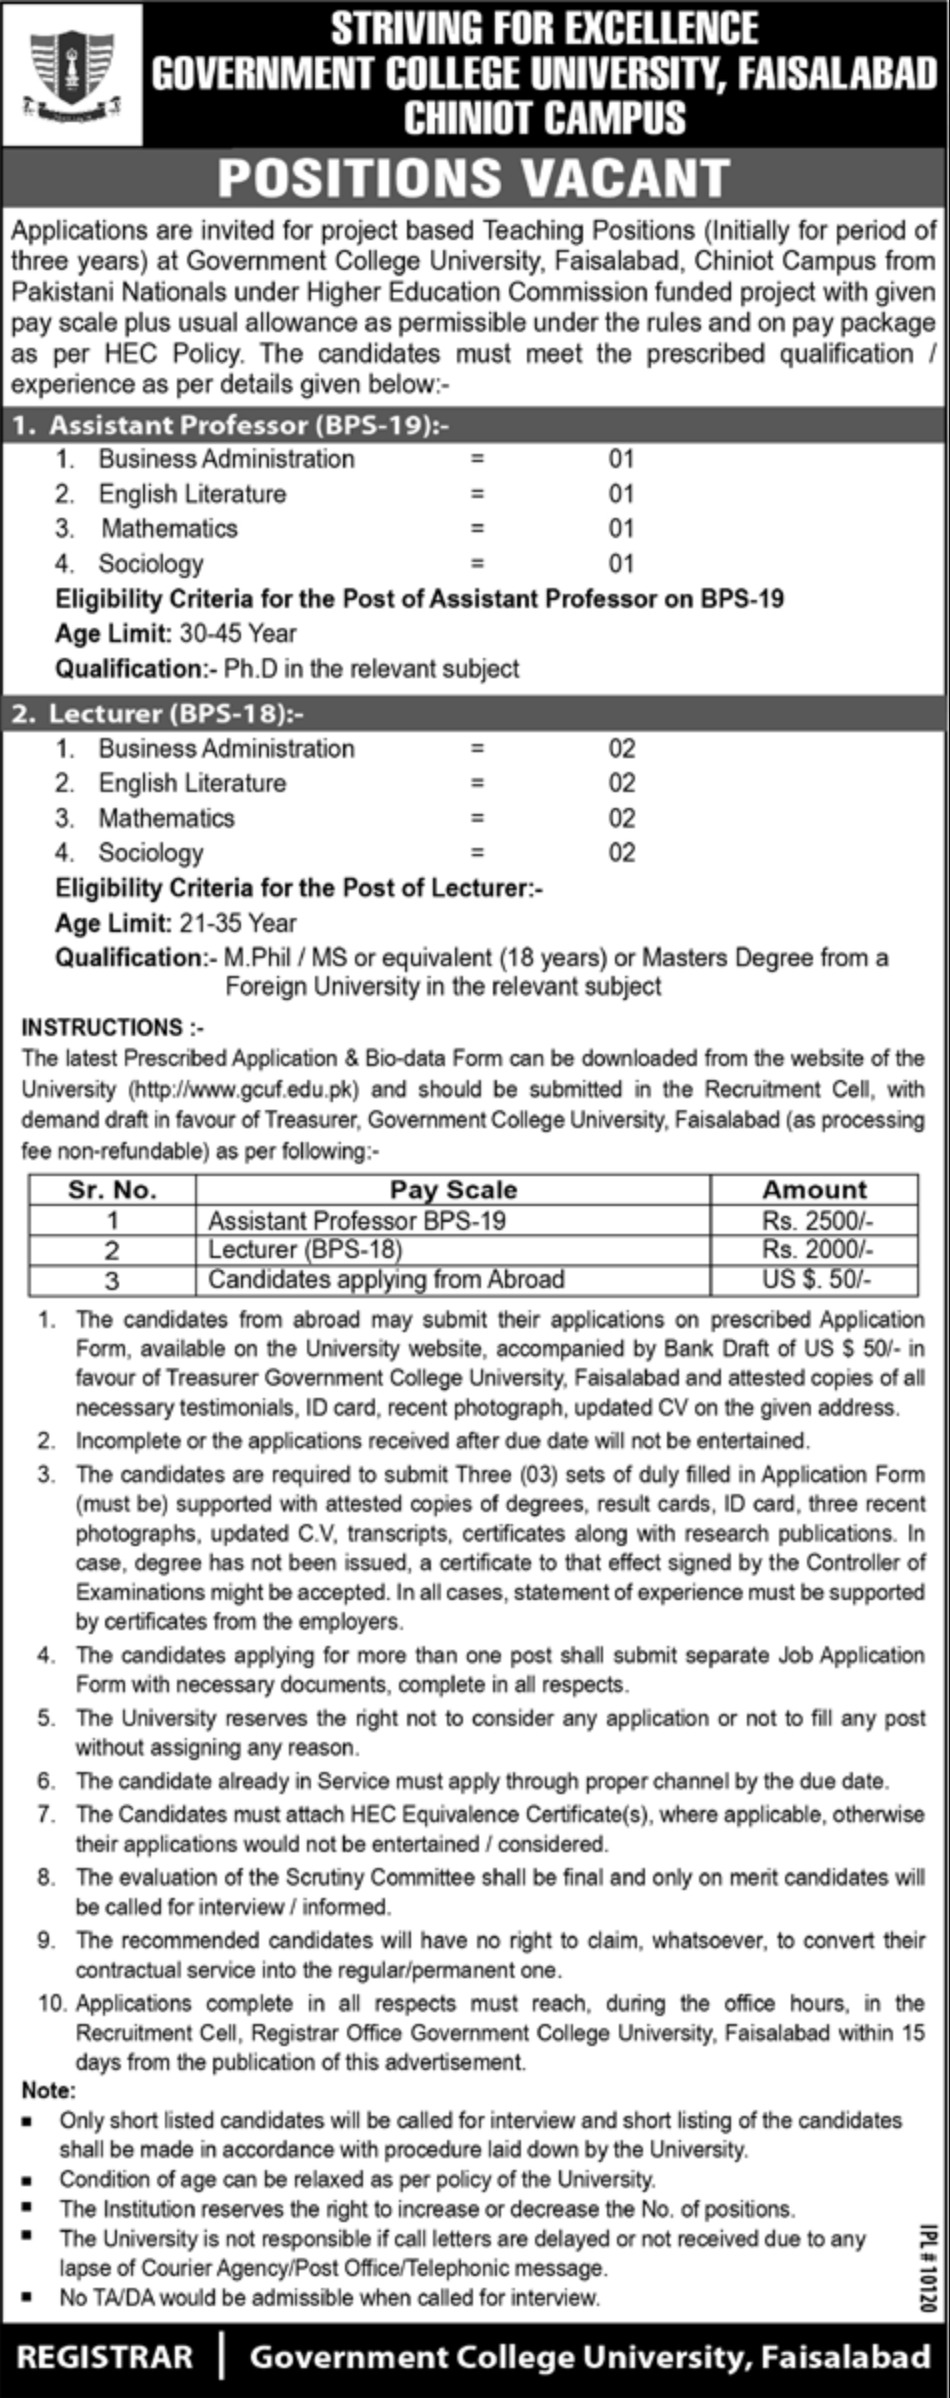 Government College University Faisalabad Jobs 2019 GCUF Chiniot